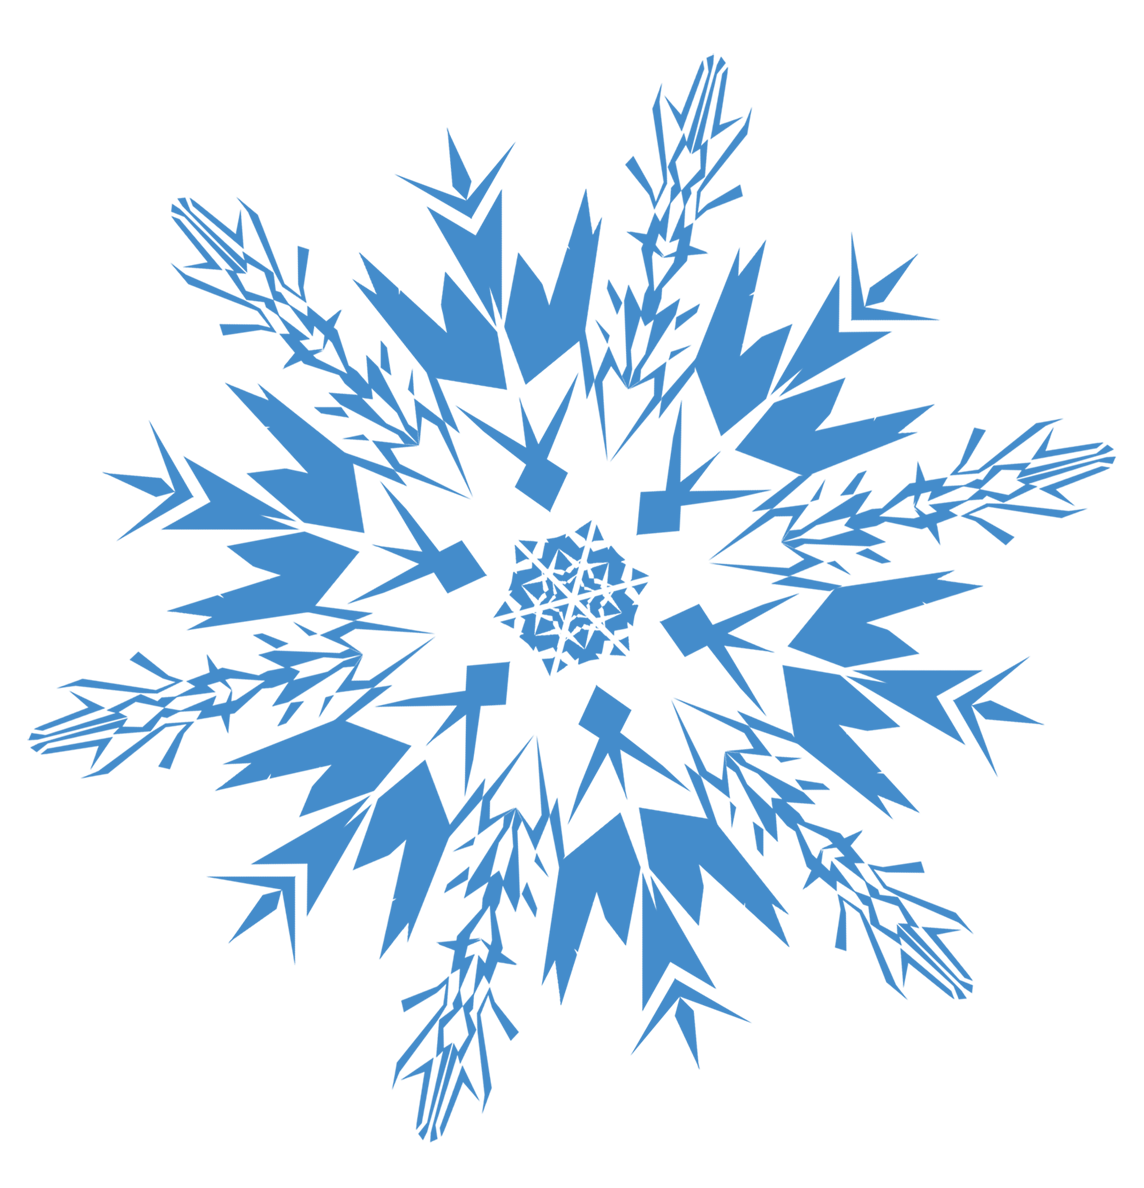 Snowflake border png transparent. Snowflakes images free download